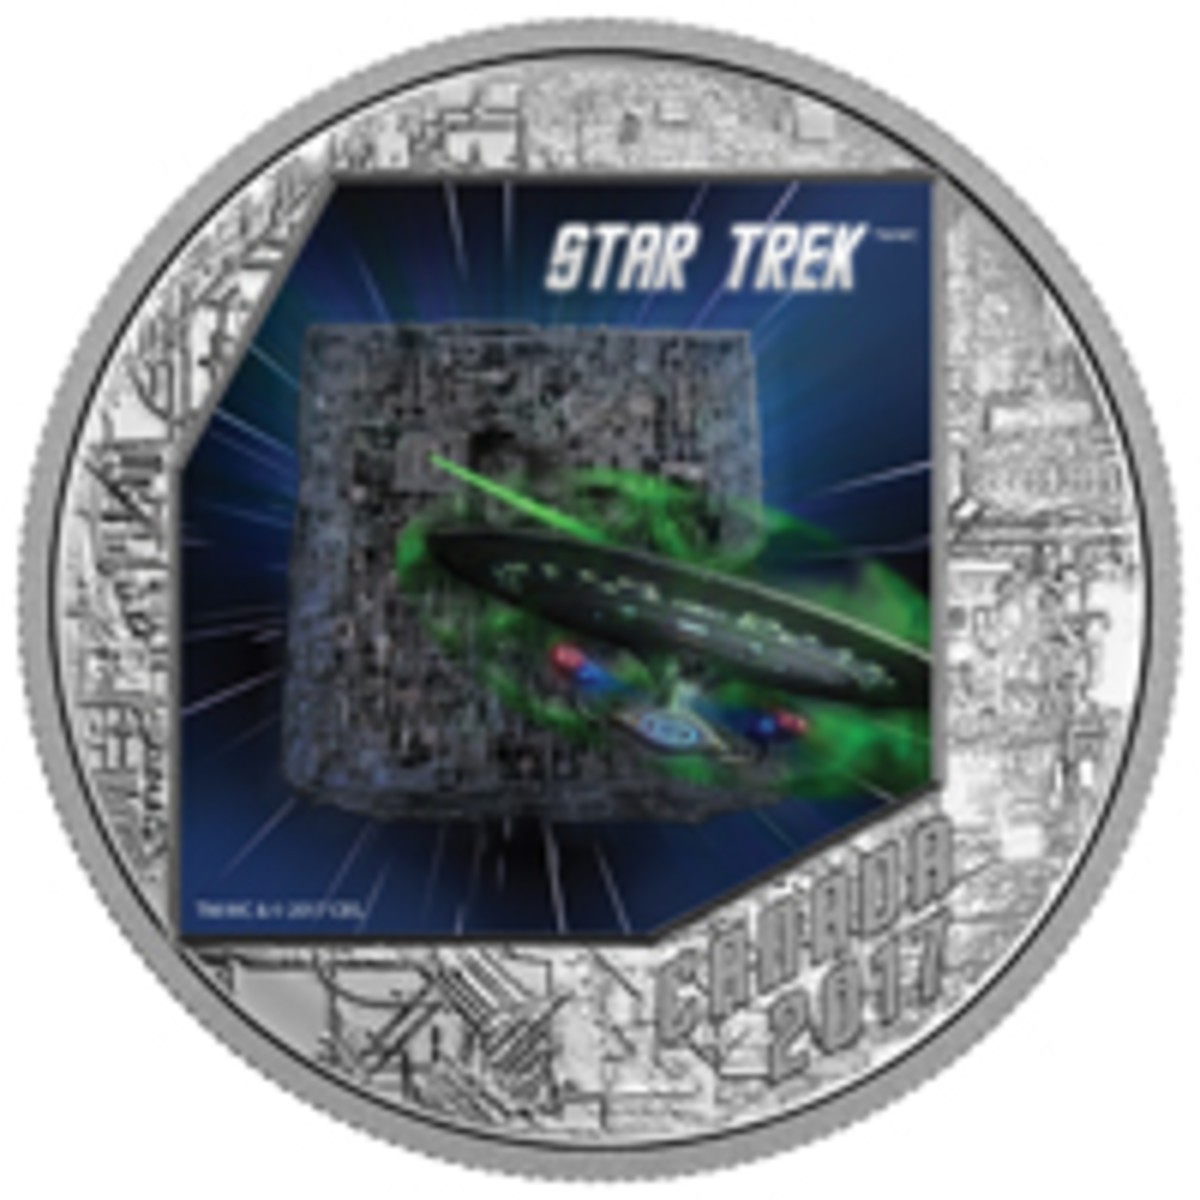 The Borg arrive intent on assimilating the biological and technological distinctiveness of the U.S.S. Enterprise and its crew on the reverse of this Canadian silver $20 proof. (Image courtesy Royal Canadian Mint. TM & © 2017 CBS Studios Inc. STAR TREK and related marks and logos are trademarks of CBS Studios Inc. All Rights Reserved.)